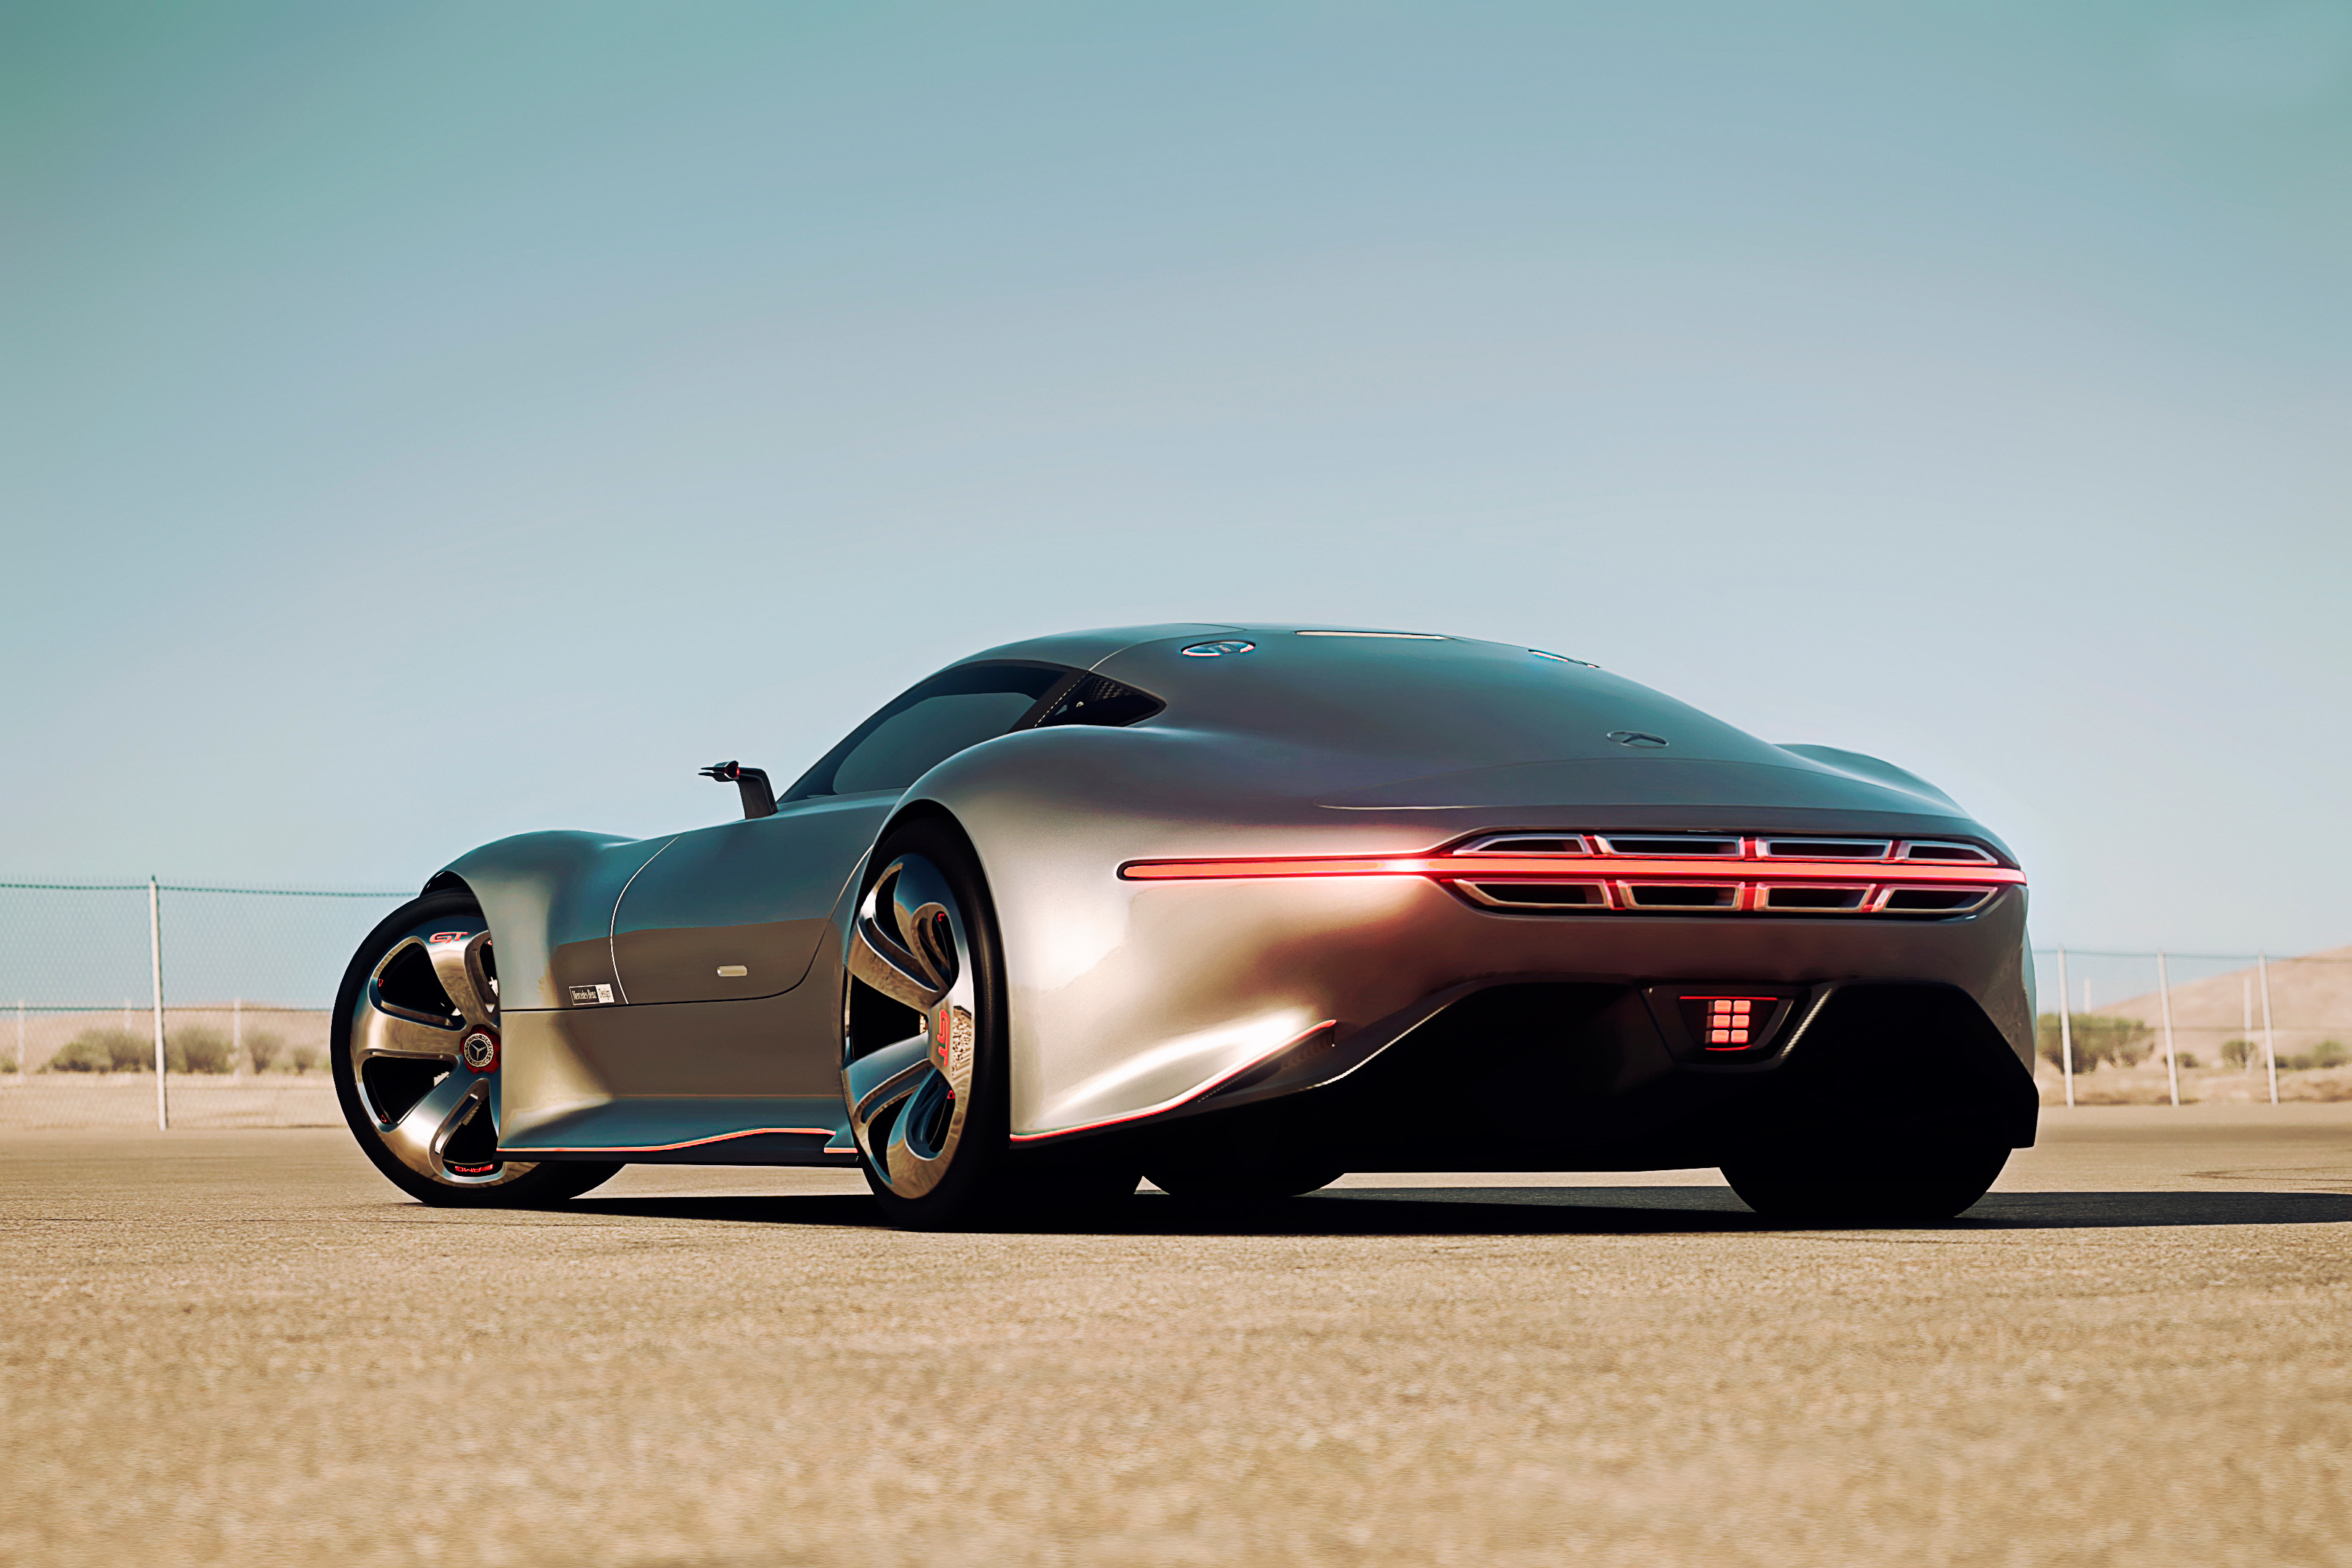 155584 download wallpaper Cars, Mercedes-Benz, Gran Turismo, Amg Vision, Silver Stunner screensavers and pictures for free